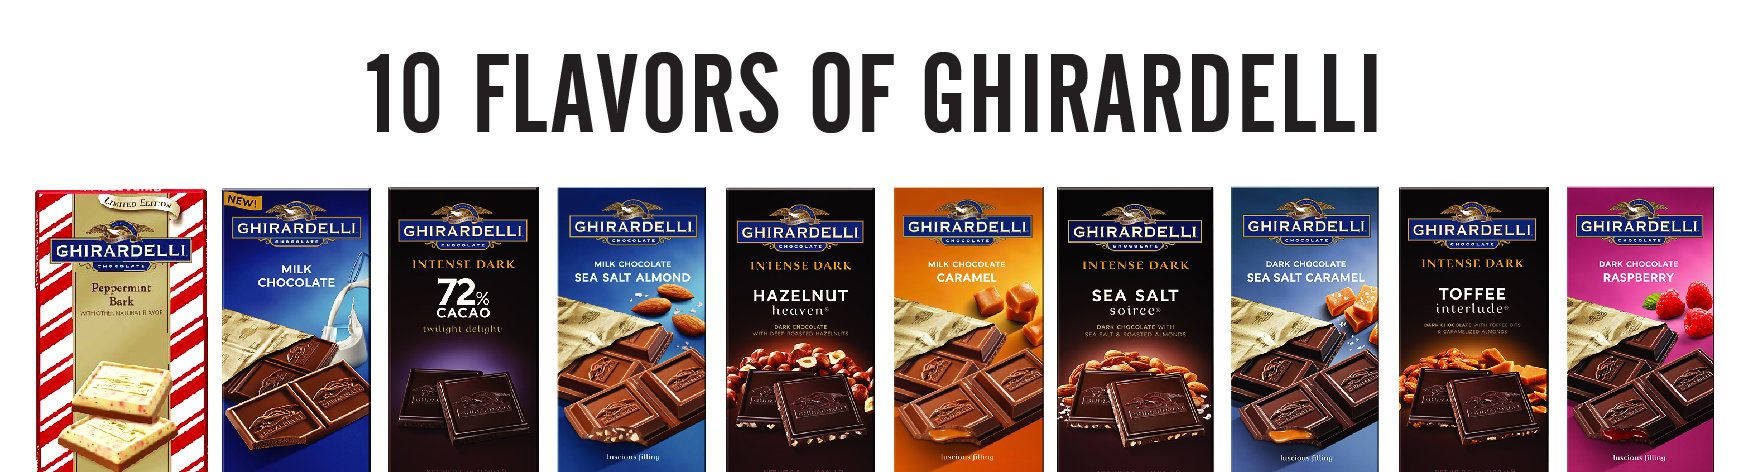 10 Flavors of Ghirardelli